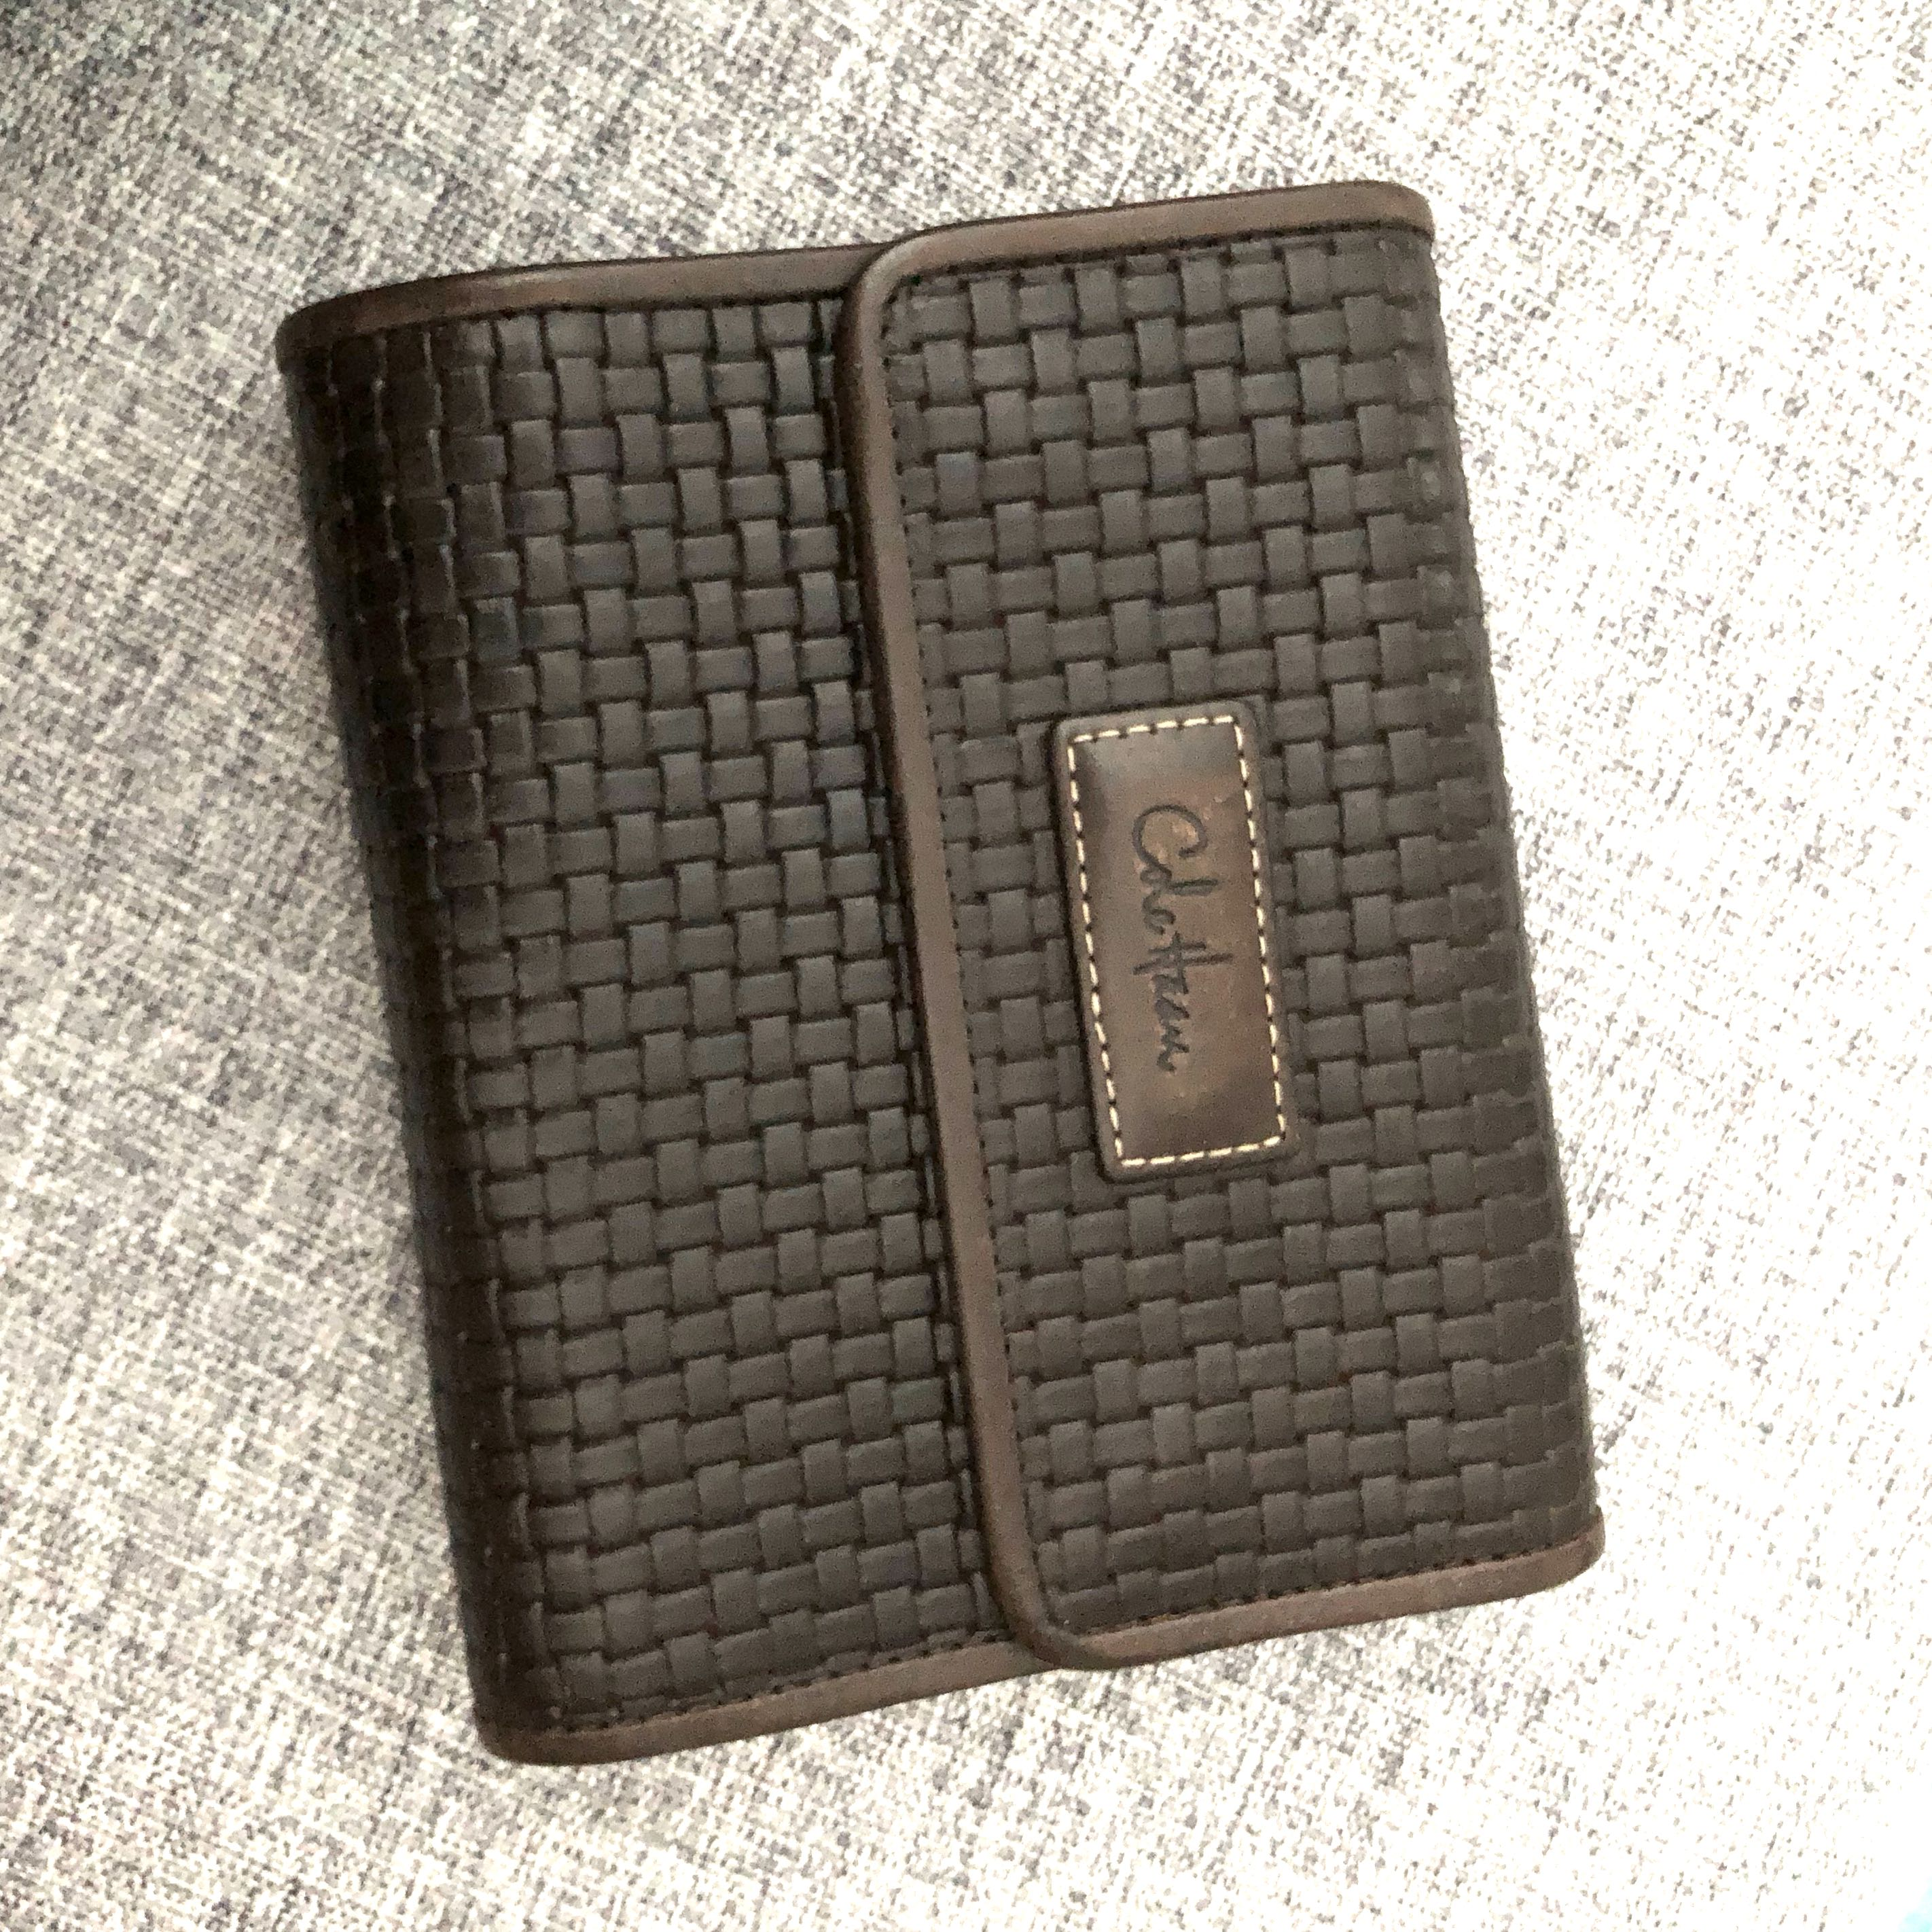 85a3acda7cb Cole Haan Leather Card Wallet, Women's Fashion, Bags & Wallets ...